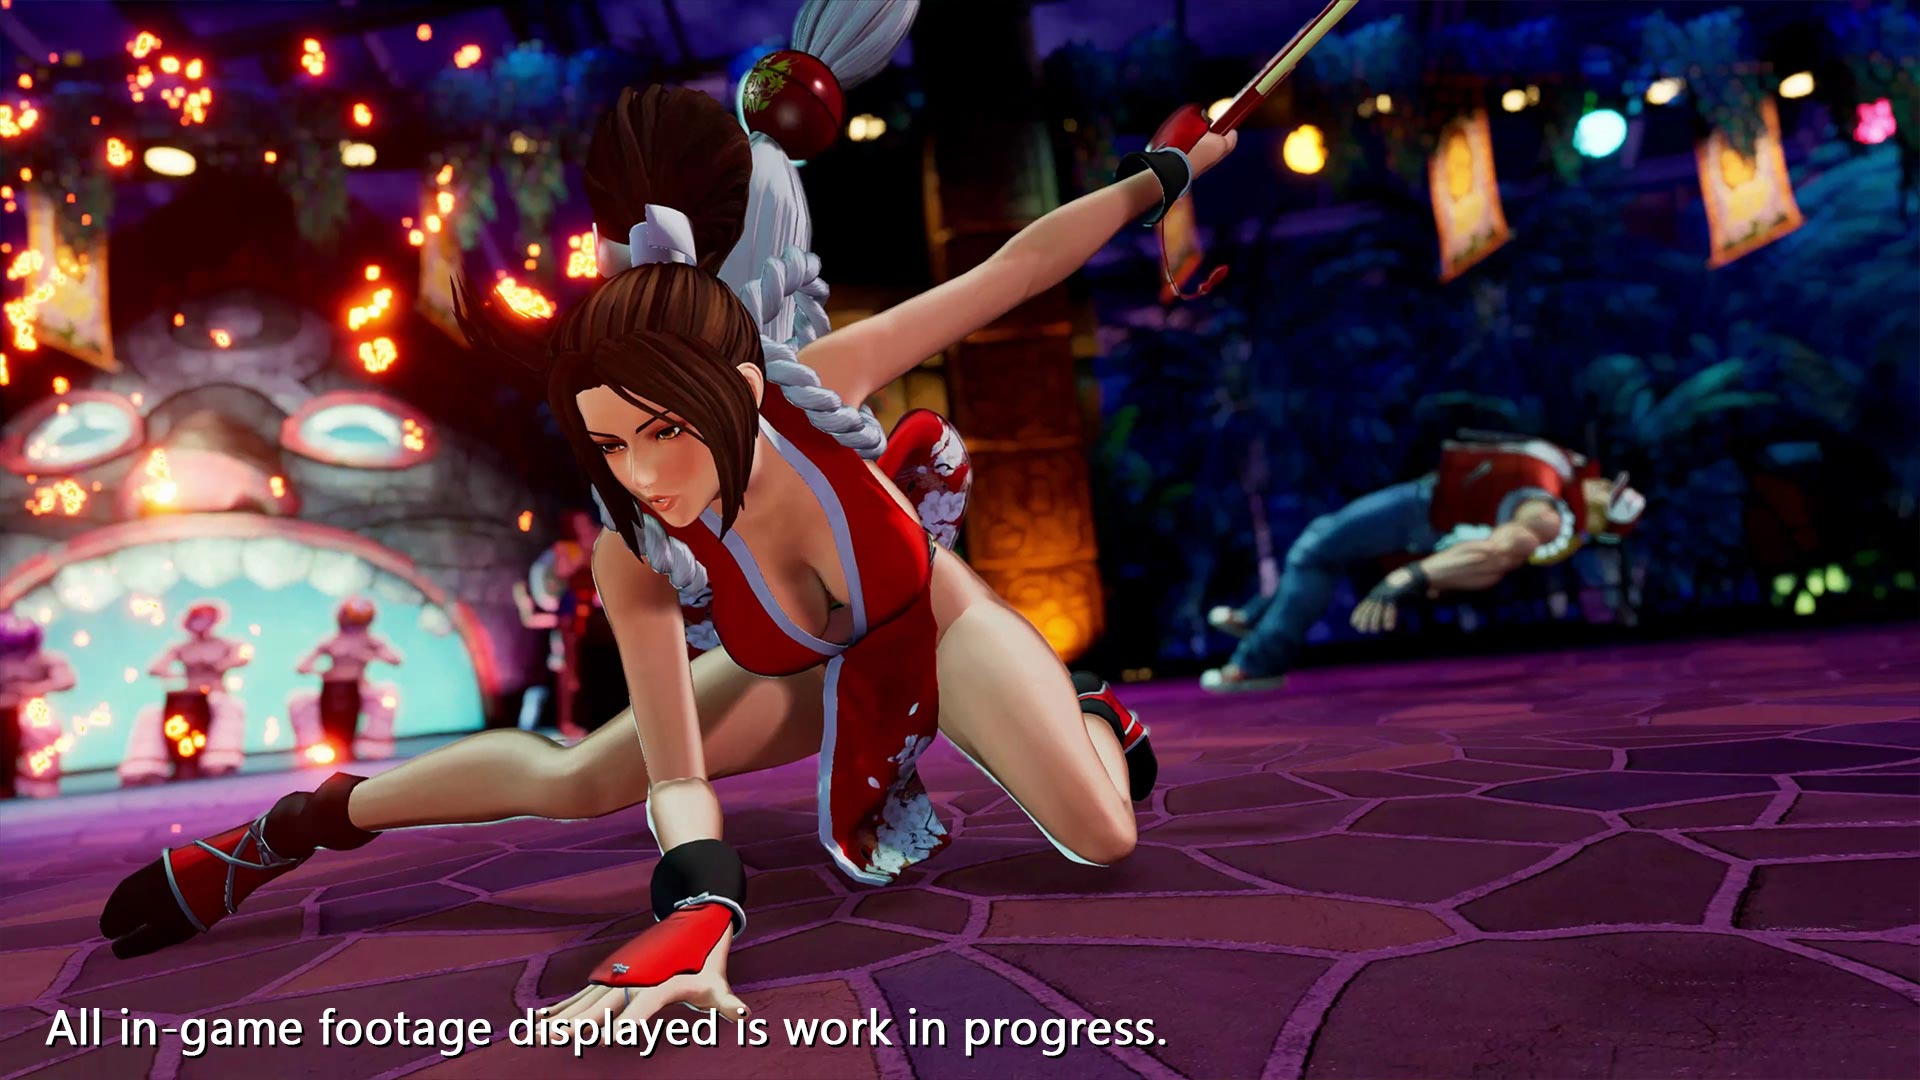 Mai gameplay trailer 3 out of 9 image gallery